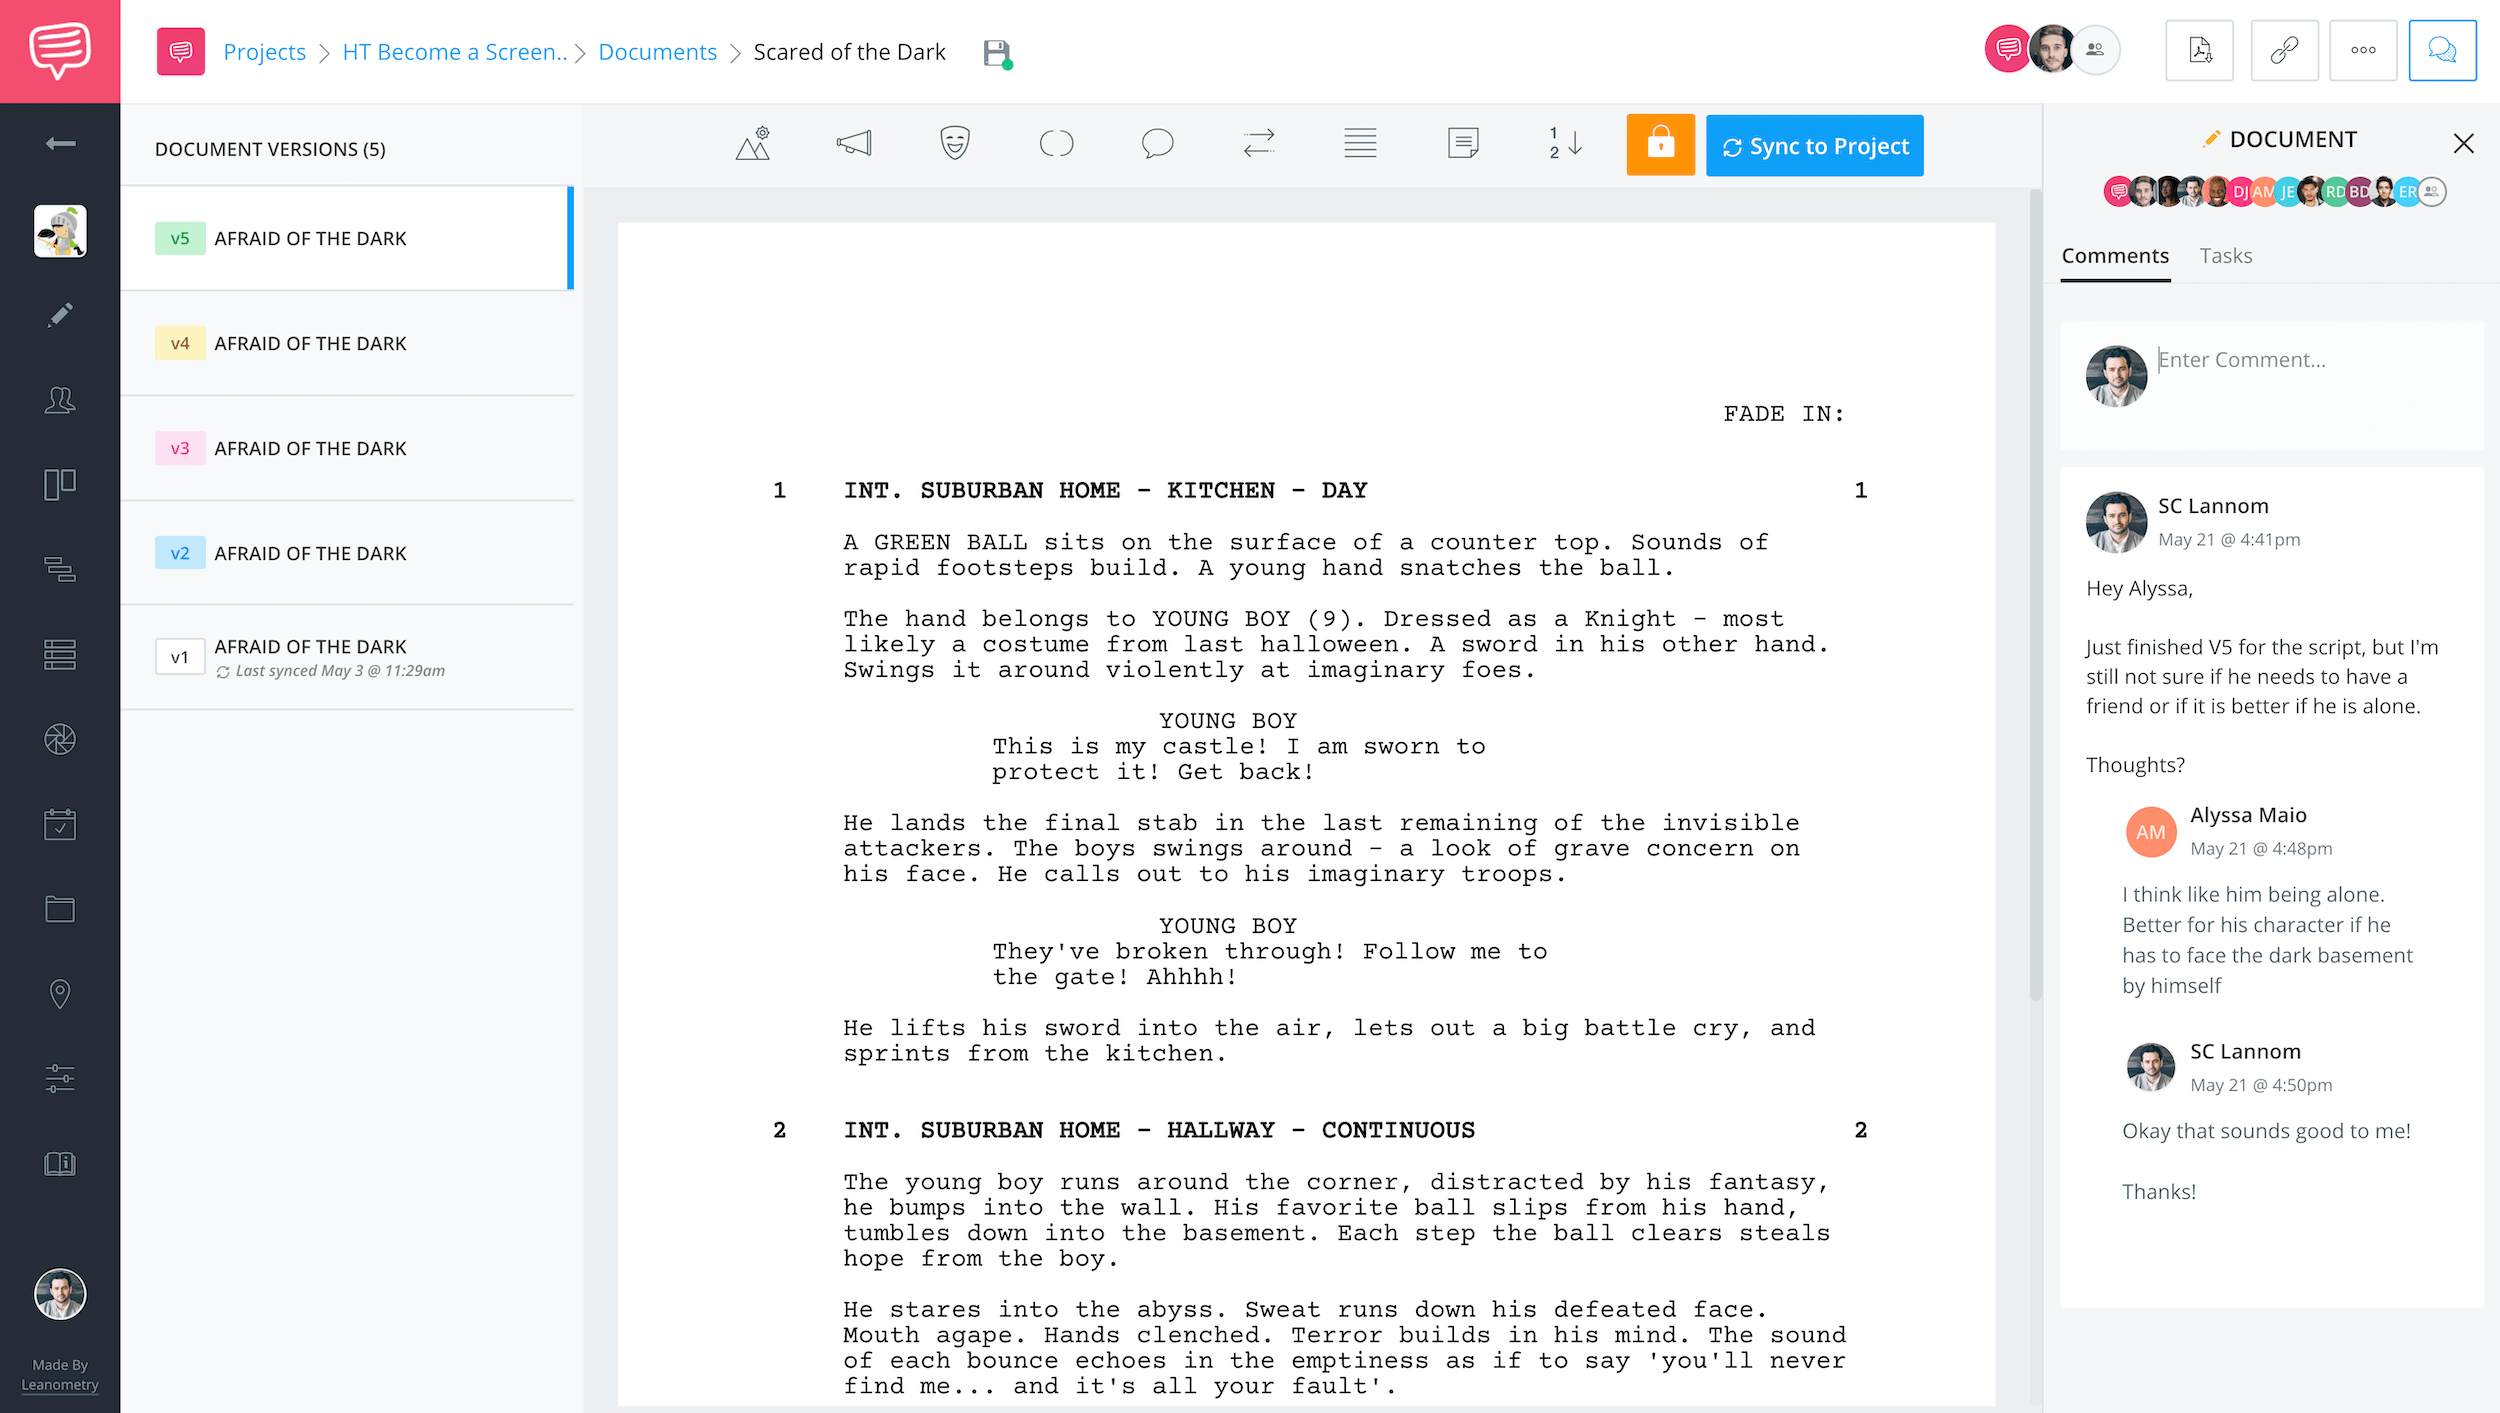 Free Scriptwriting Software for Filmmakers - Scriptwriting Software - Collaboration - StudioBinder